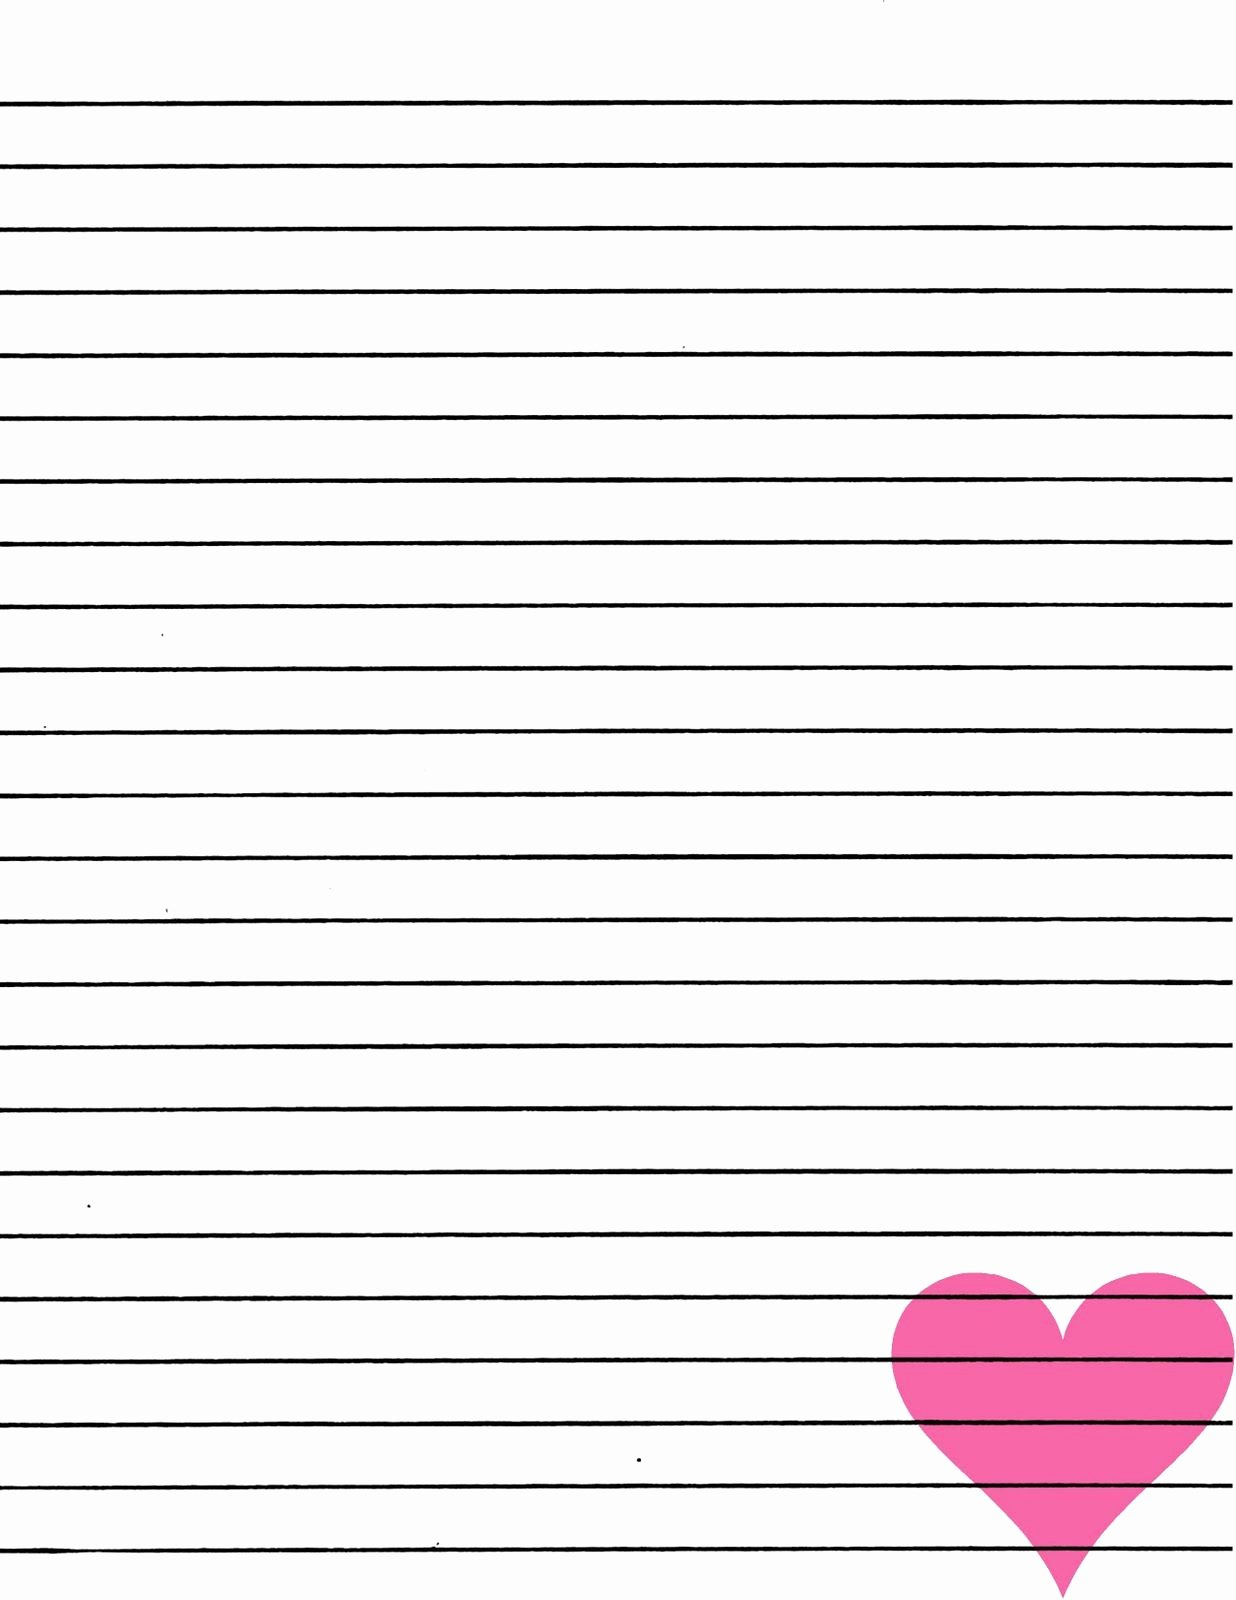 Free Lined Writing Paper Luxury Just Smashing Paper Freebie Pink Heart Lined Paper